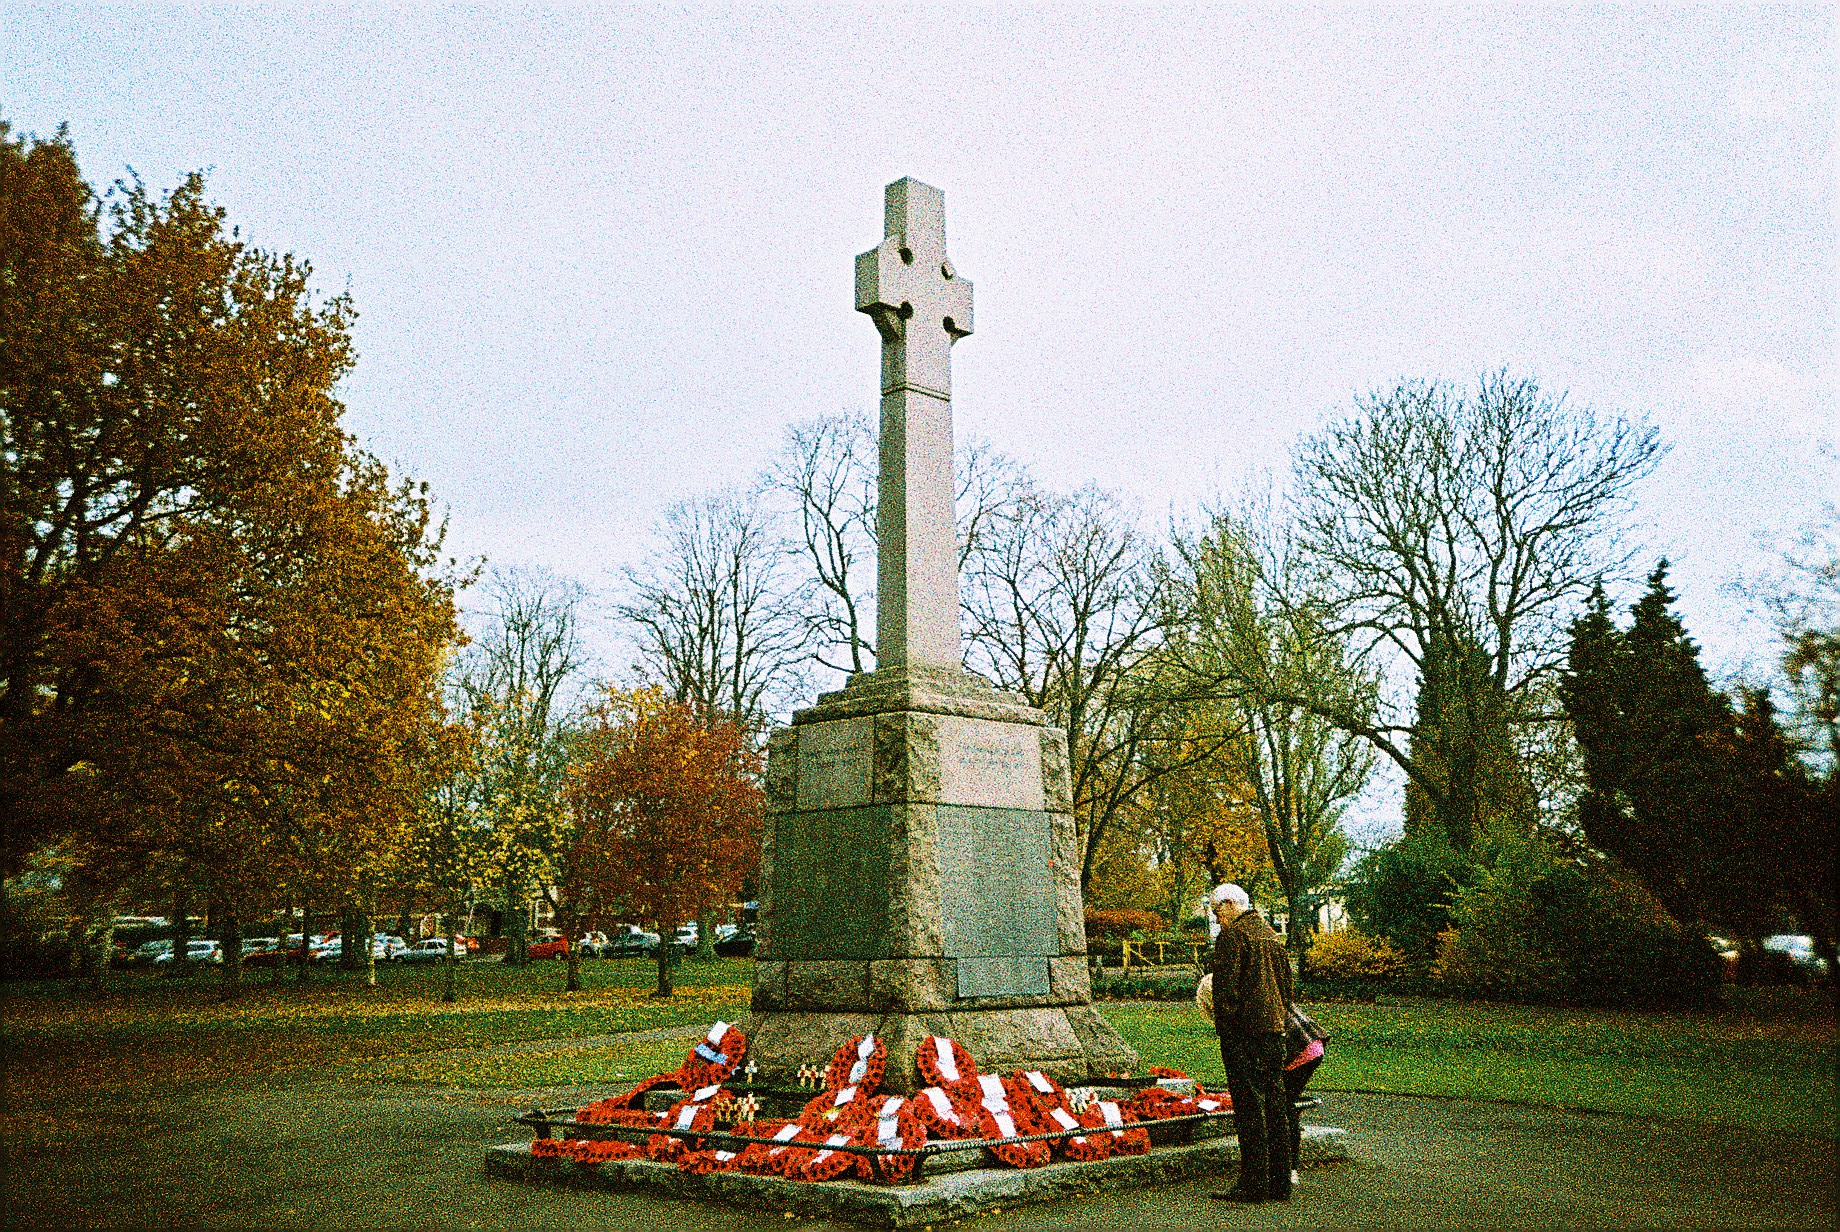 35mm Xpro Nuneaton War Memorial